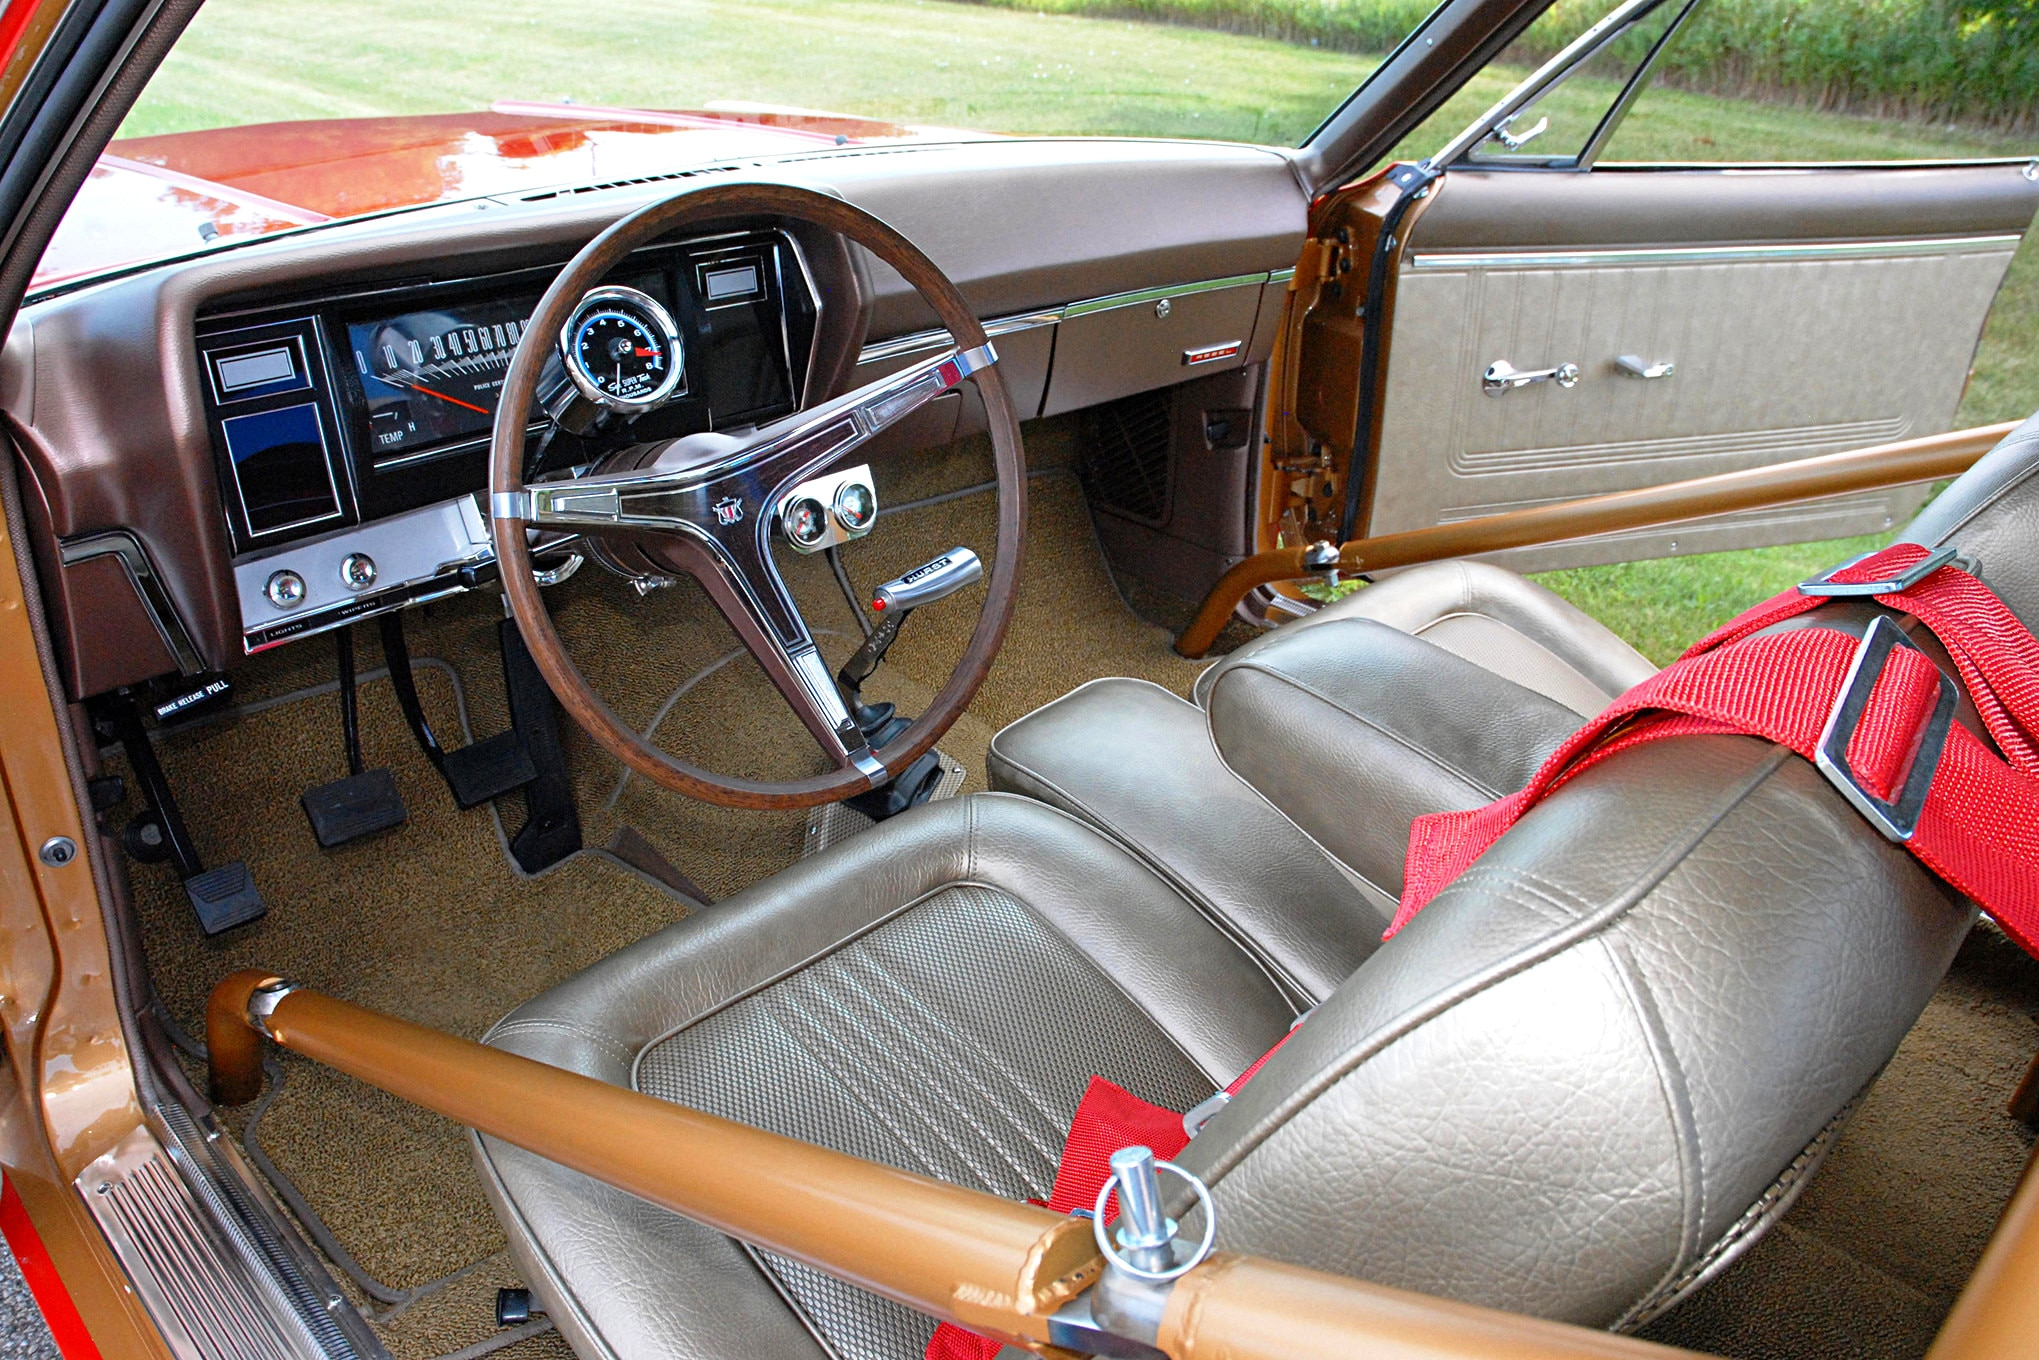 Aherns said one of the toughest jobs was restoring the Rebel's factory gold interior, as most of it had been ripped out or highly modified over the years. In fact, the dash pad itself took two year to re-create. Upholstery is from SMS, while the carpeting is from the nice folks at ACC.